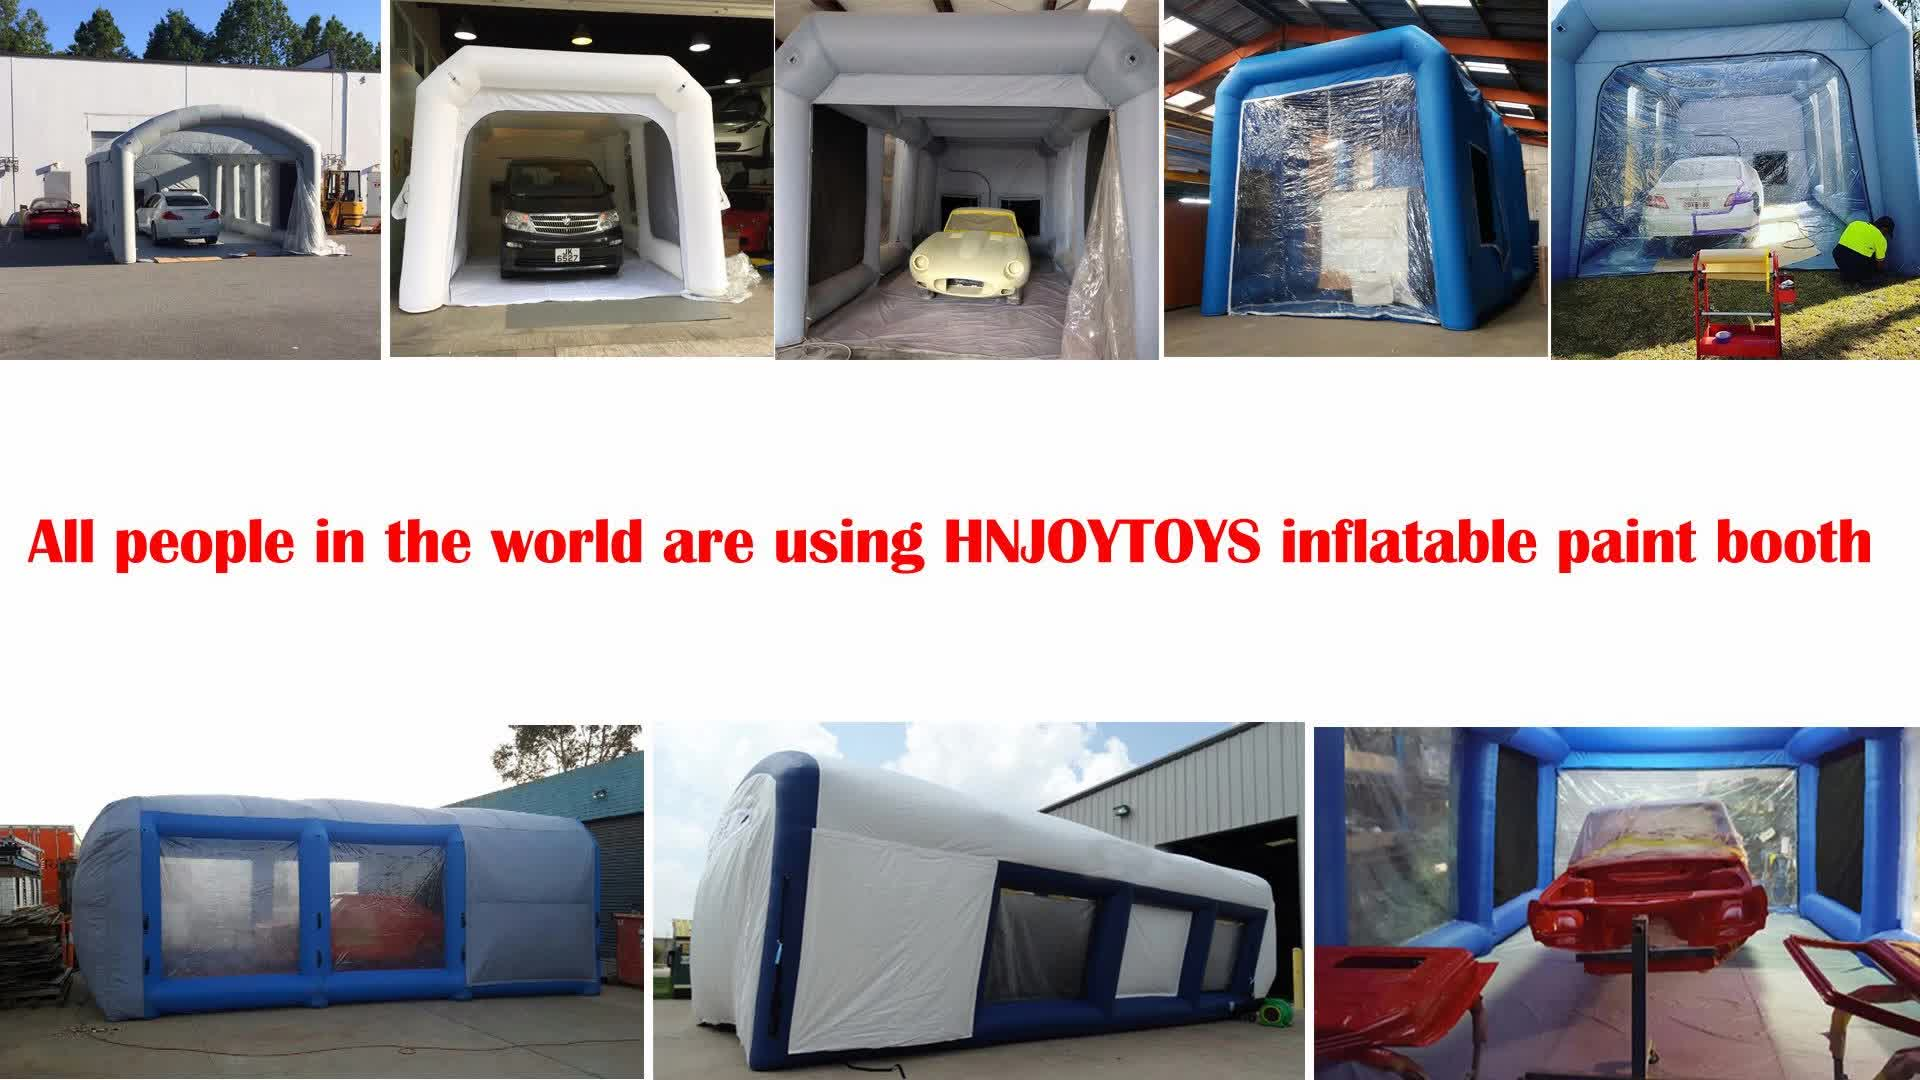 Hot sale Competitive Removeable Customized Inflatable Spray Paint Booth in promotion cheaper